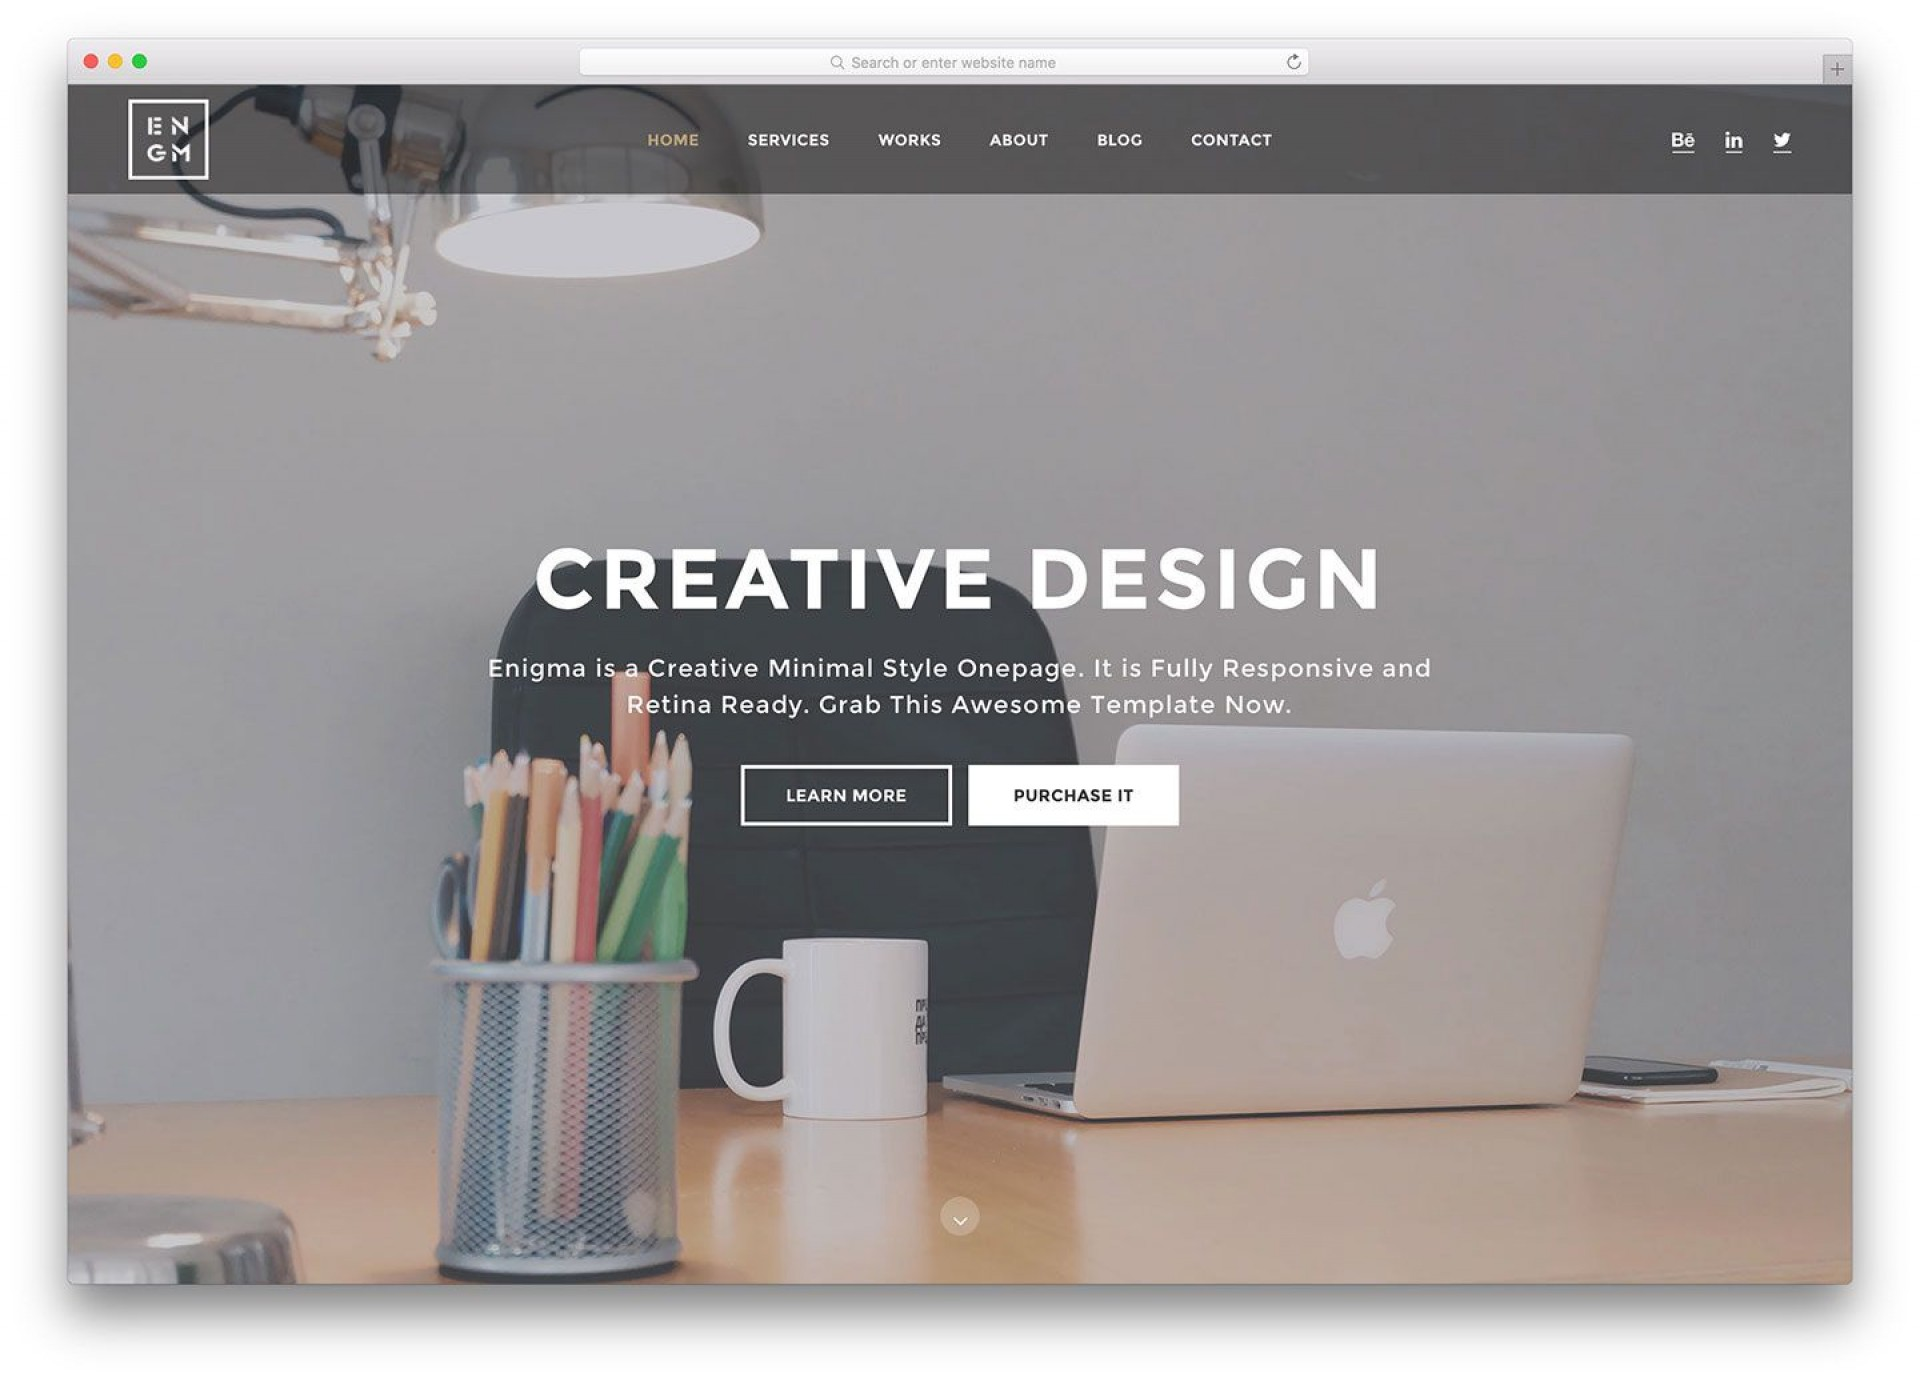 007 Stupendou Web Template Html Cs Free Download Inspiration  Responsive Website With Javascript In Jquery Ecommerce1920